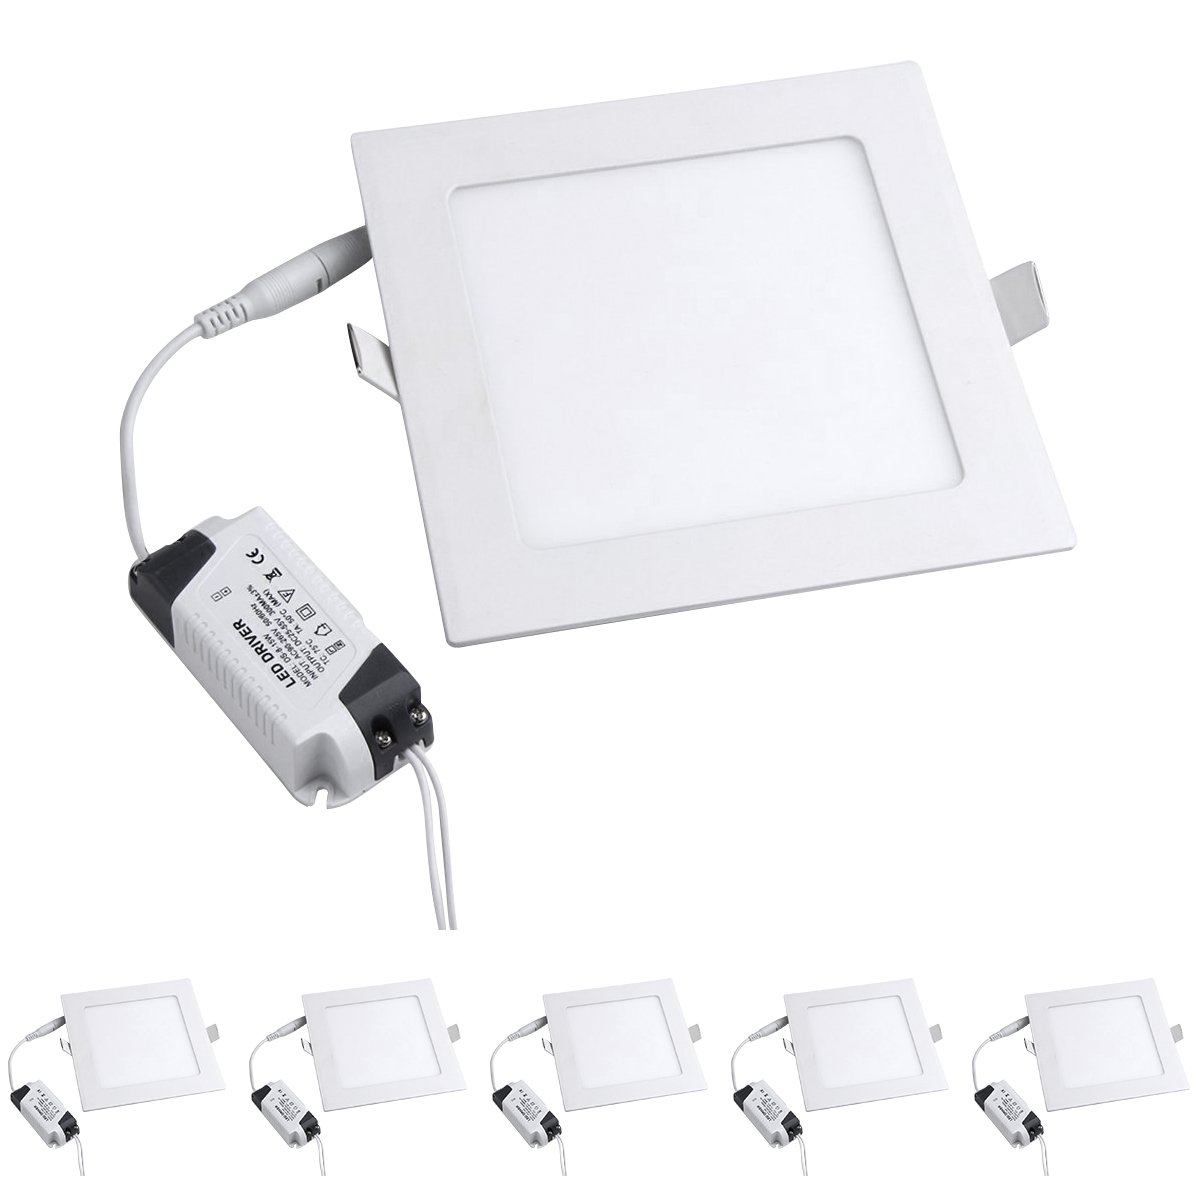 Modoao 5 Pack 18w Led Panel Light Lamp Ultrathin Square White Driver Circuit Diagram Hi Watt Recessed Downlight Ceiling Lighting With Ac85 265v Hole Size 200mm Cool Home Improvement